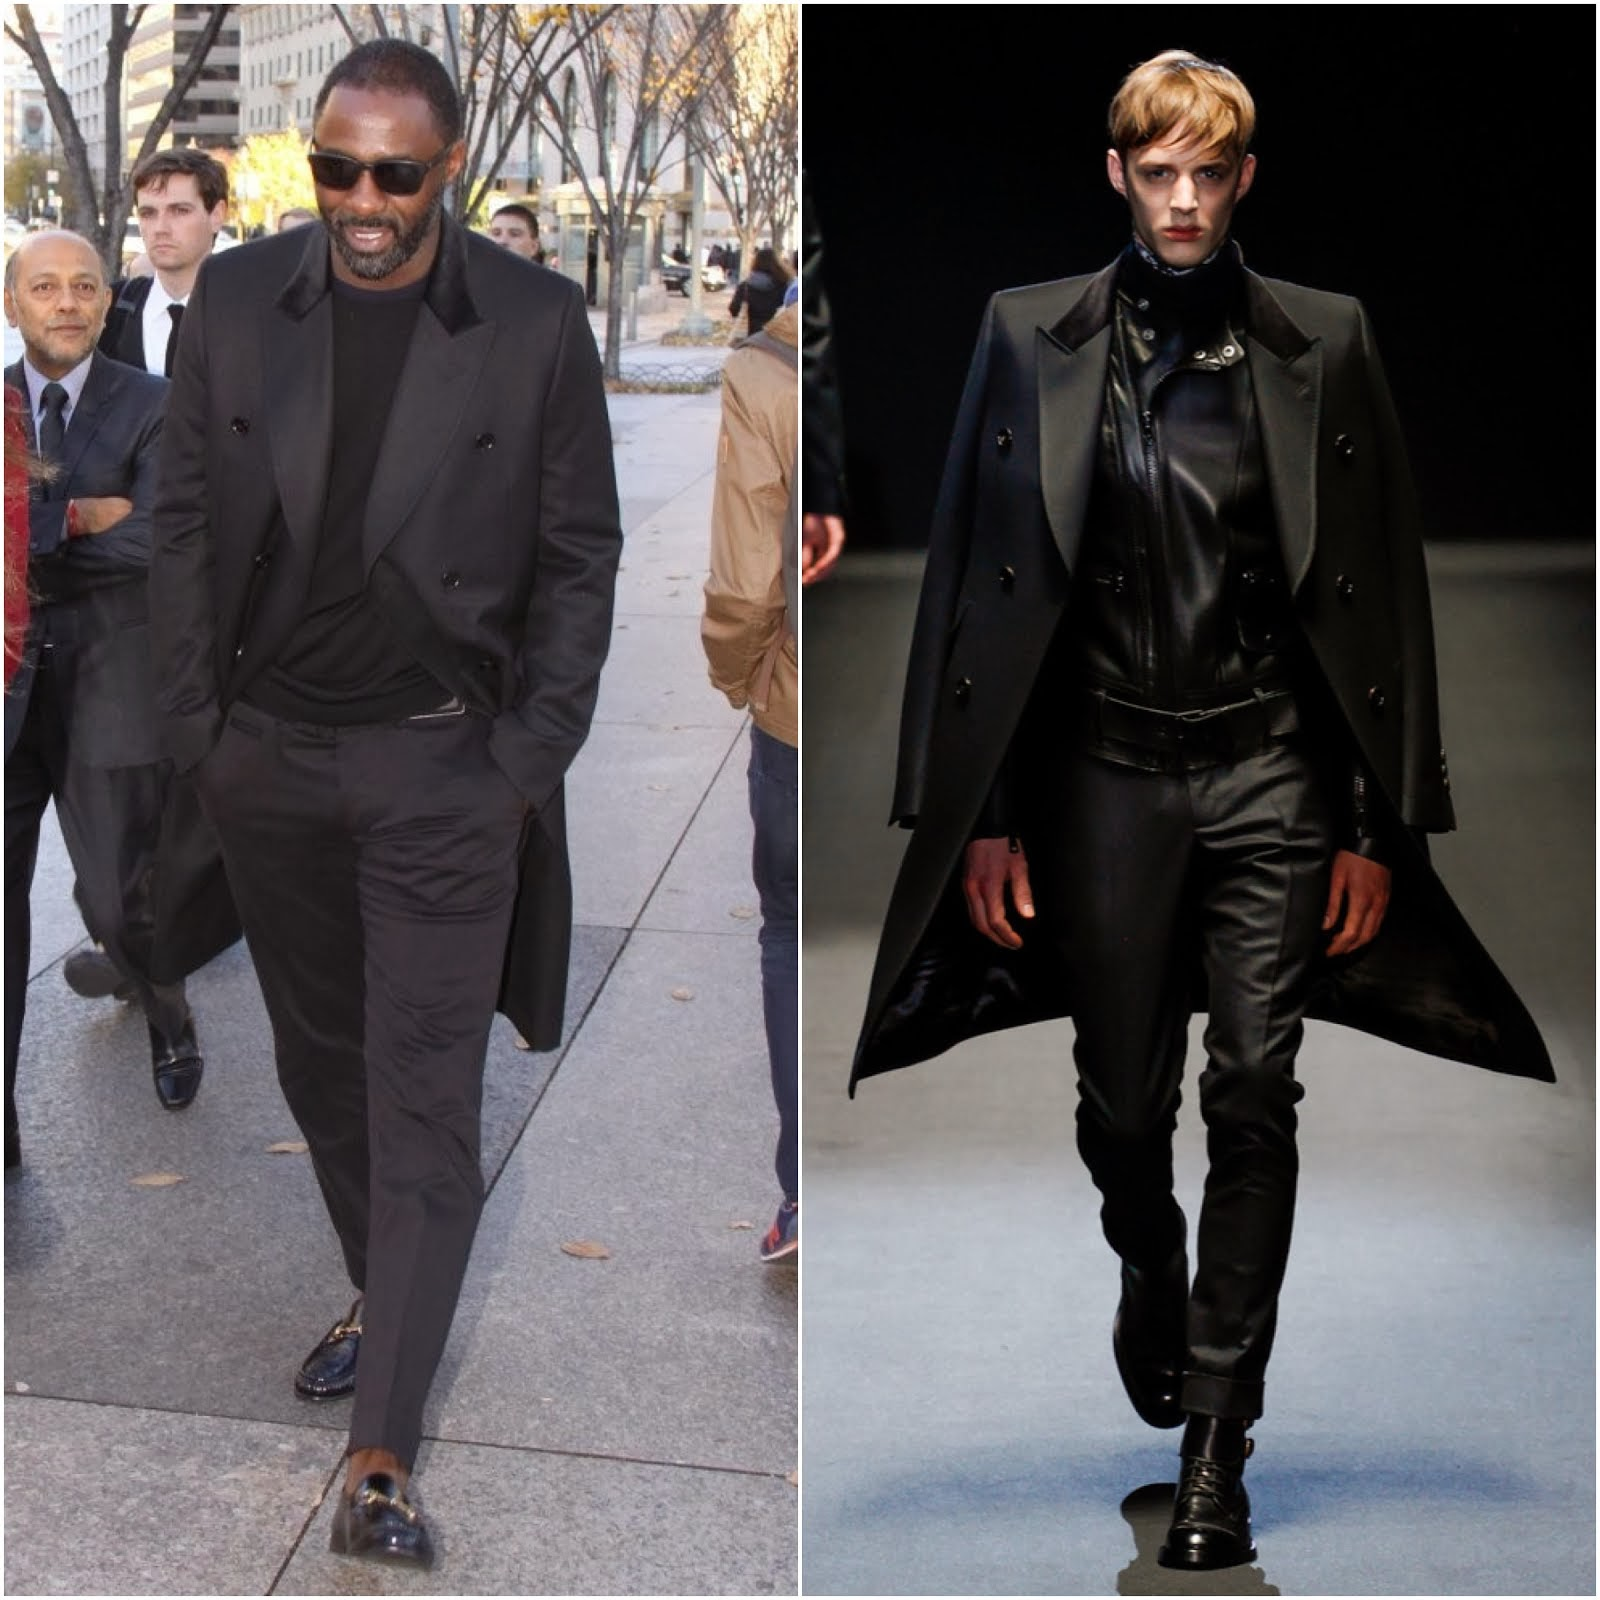 00O00 Menswear Blog: Idris Elba in Gucci FW2013 black wool equestrian coat - 'Mandela: Long Walk to Freedom' Screening, Washington D.C. November 2013